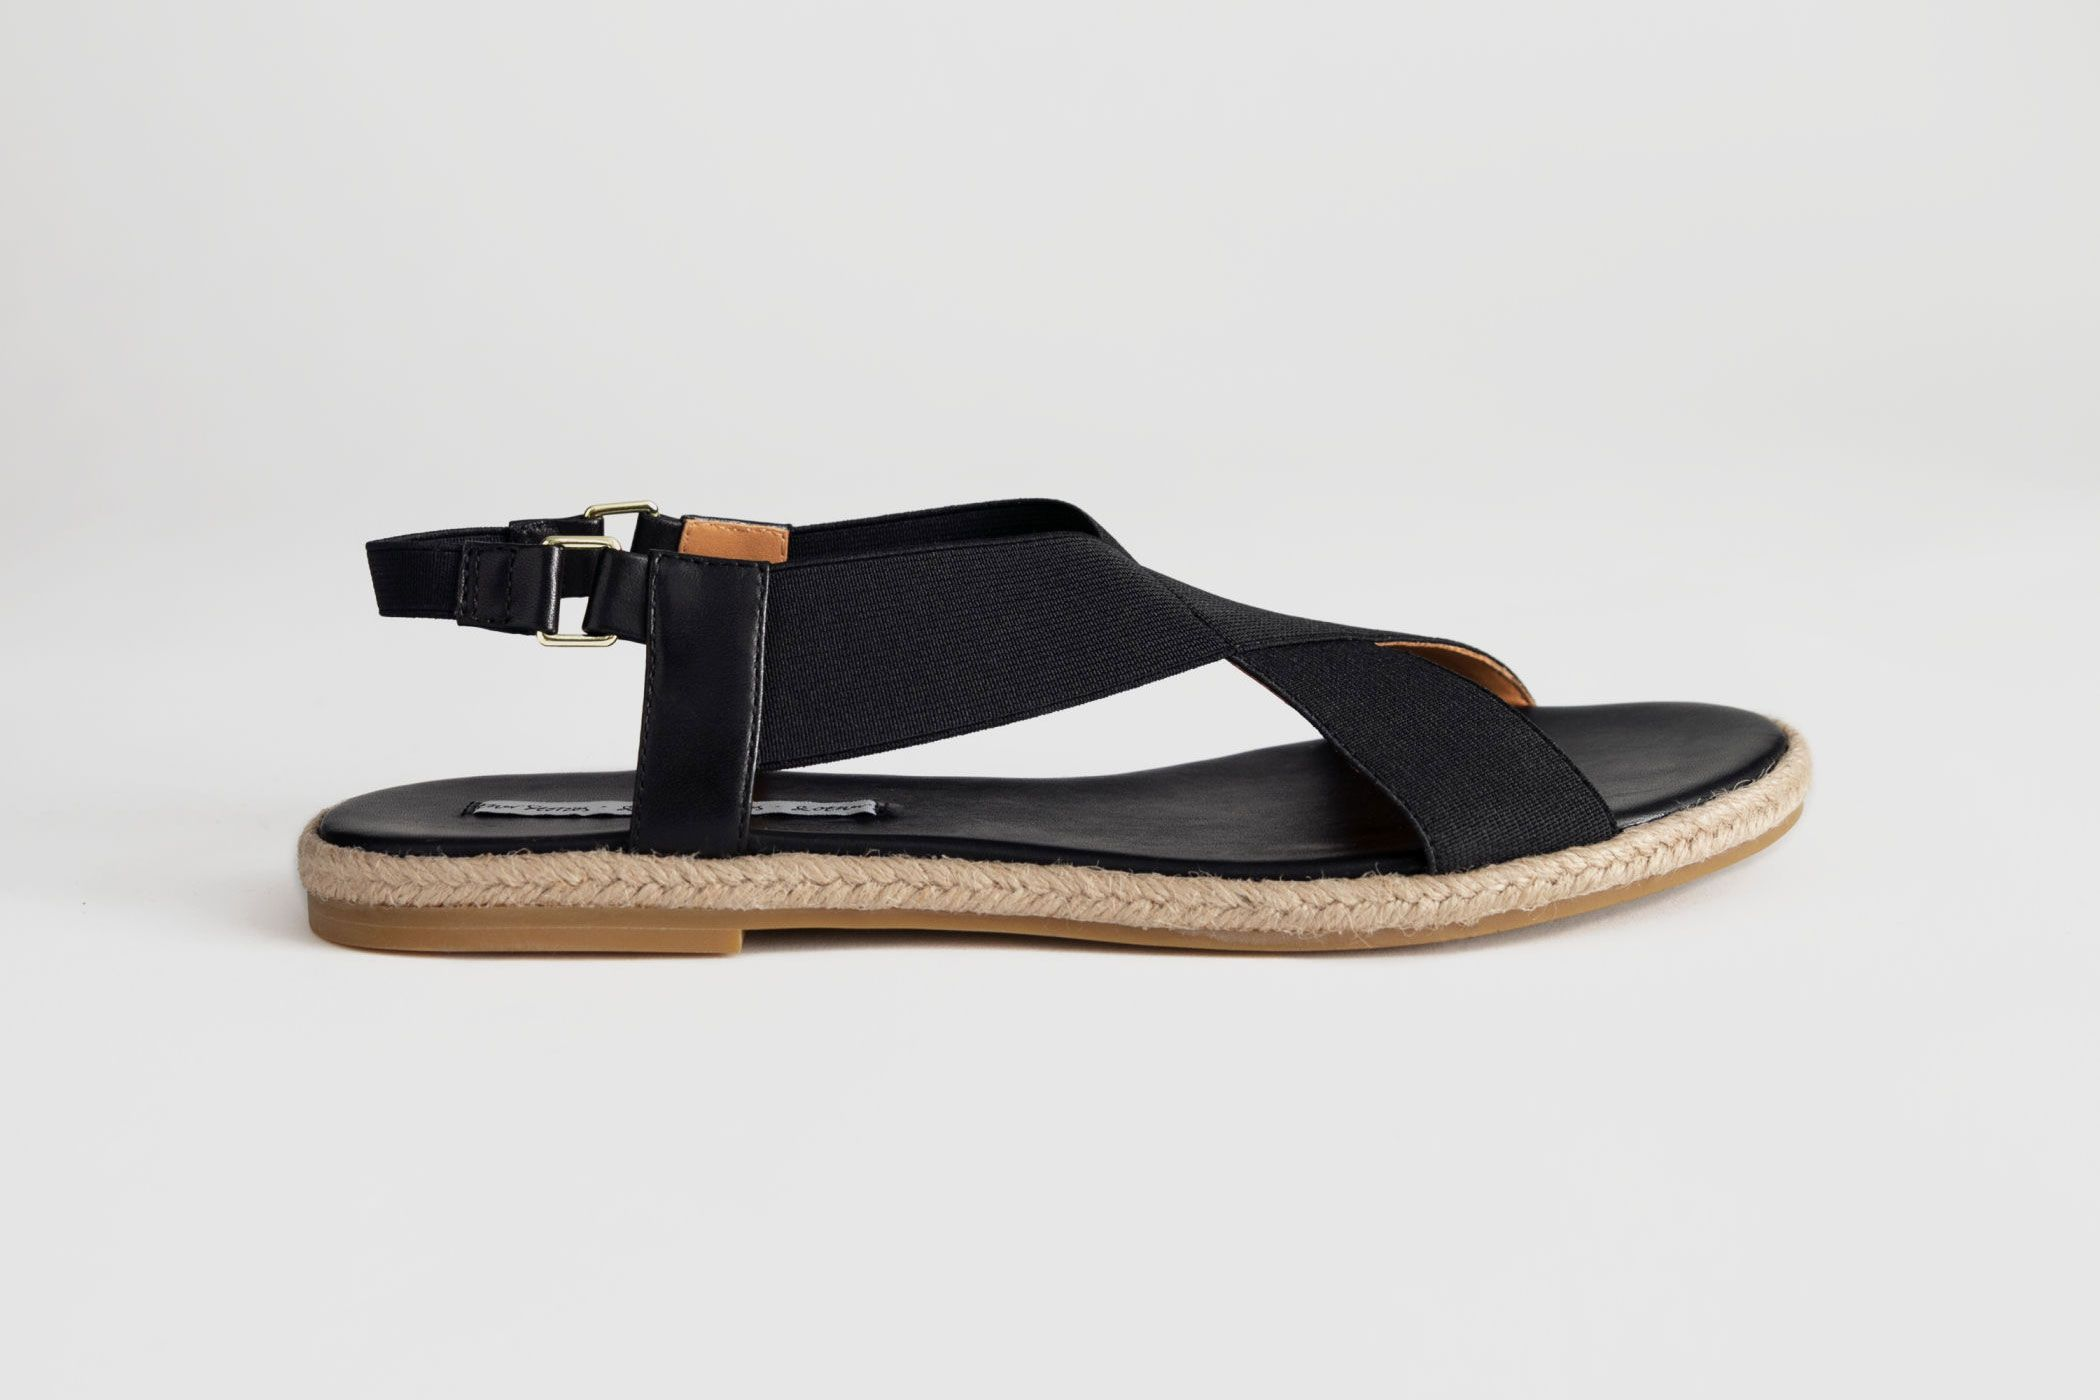 & Other Stories Cross Strap Sandal